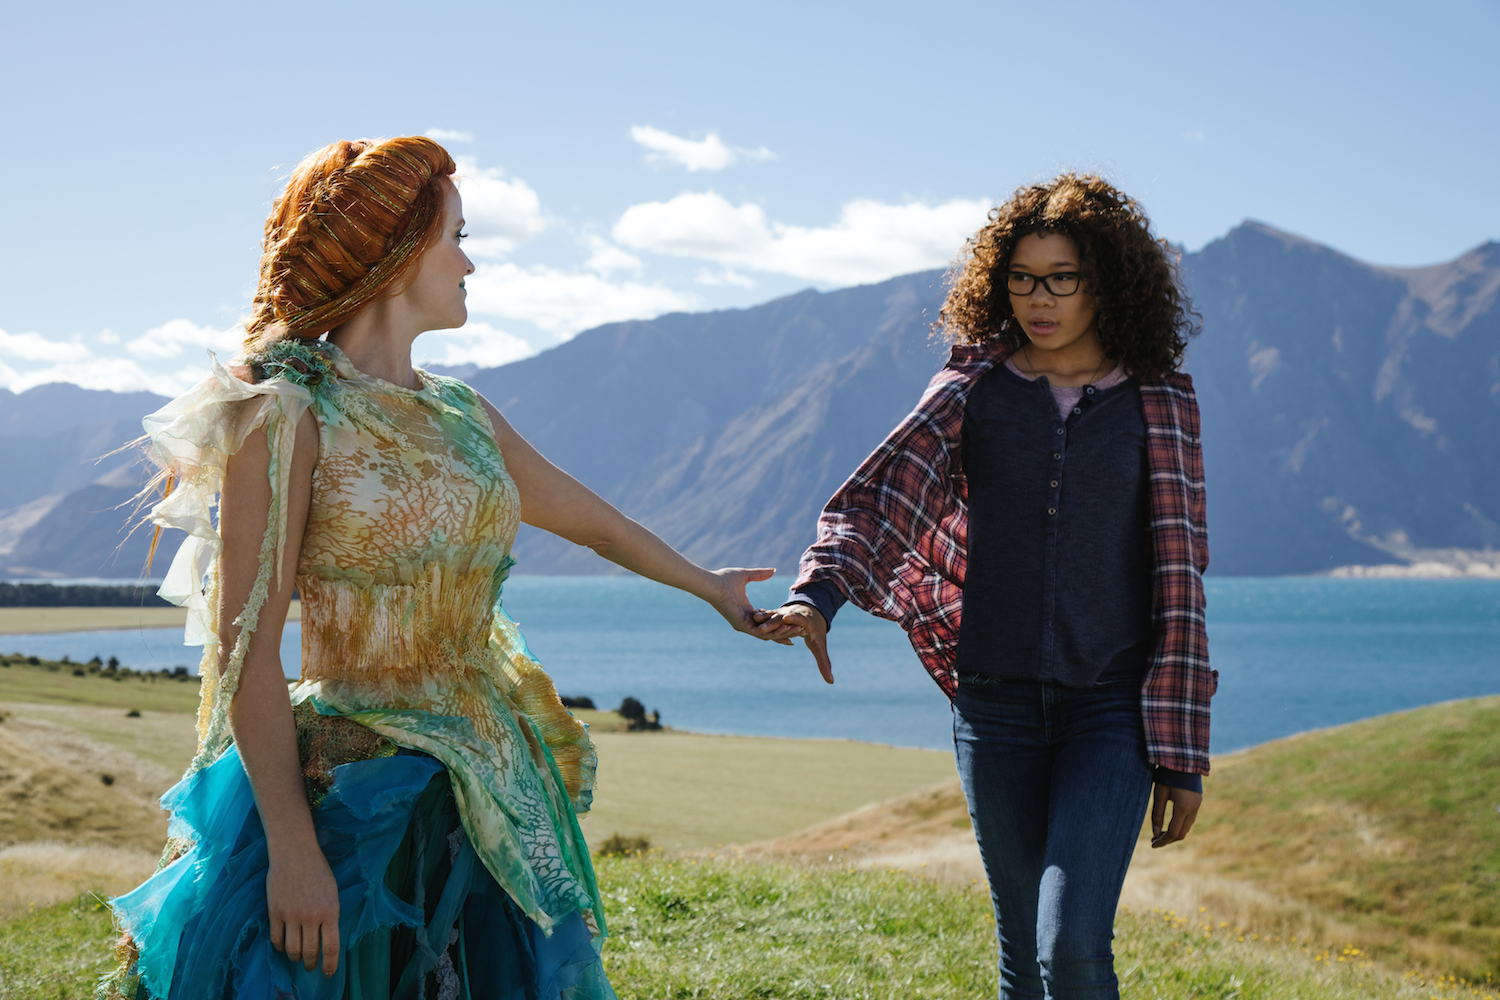 How Oscar Nominee Paco Delgado Dreamed Up the Magical Costumes in 'A Wrinkle in Time'